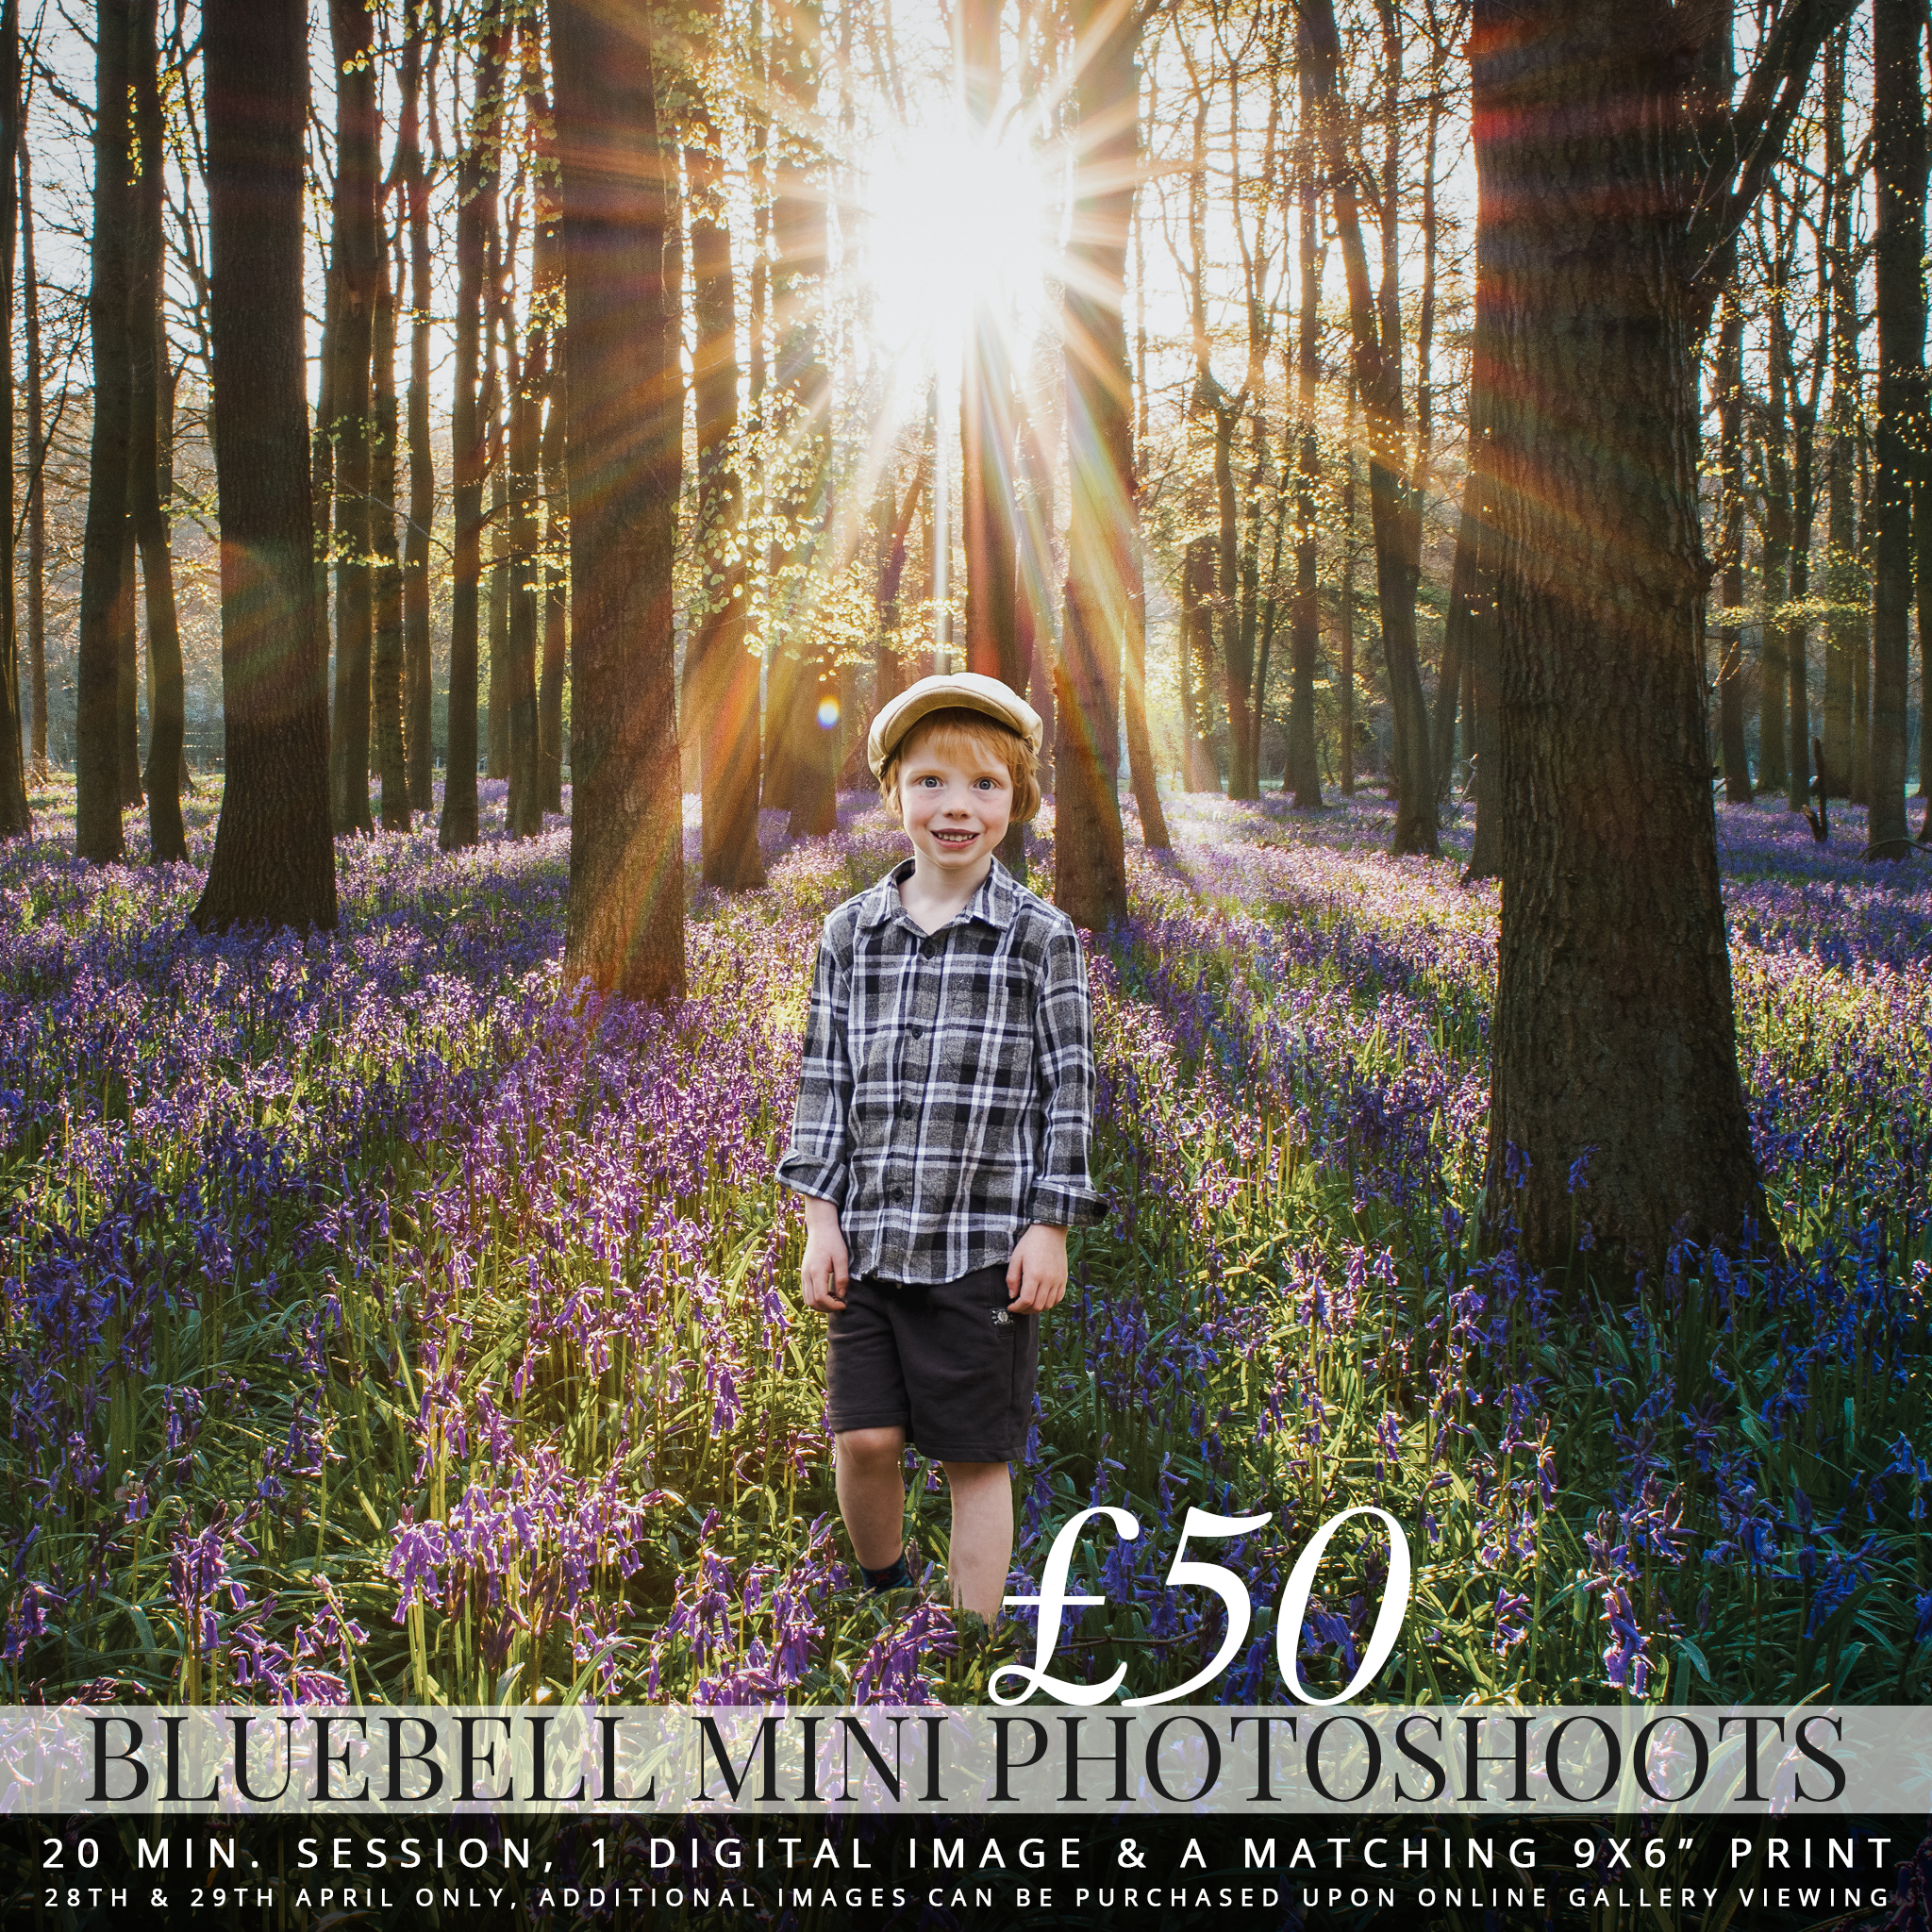 bluebell photo session mini photoshoot medway kent